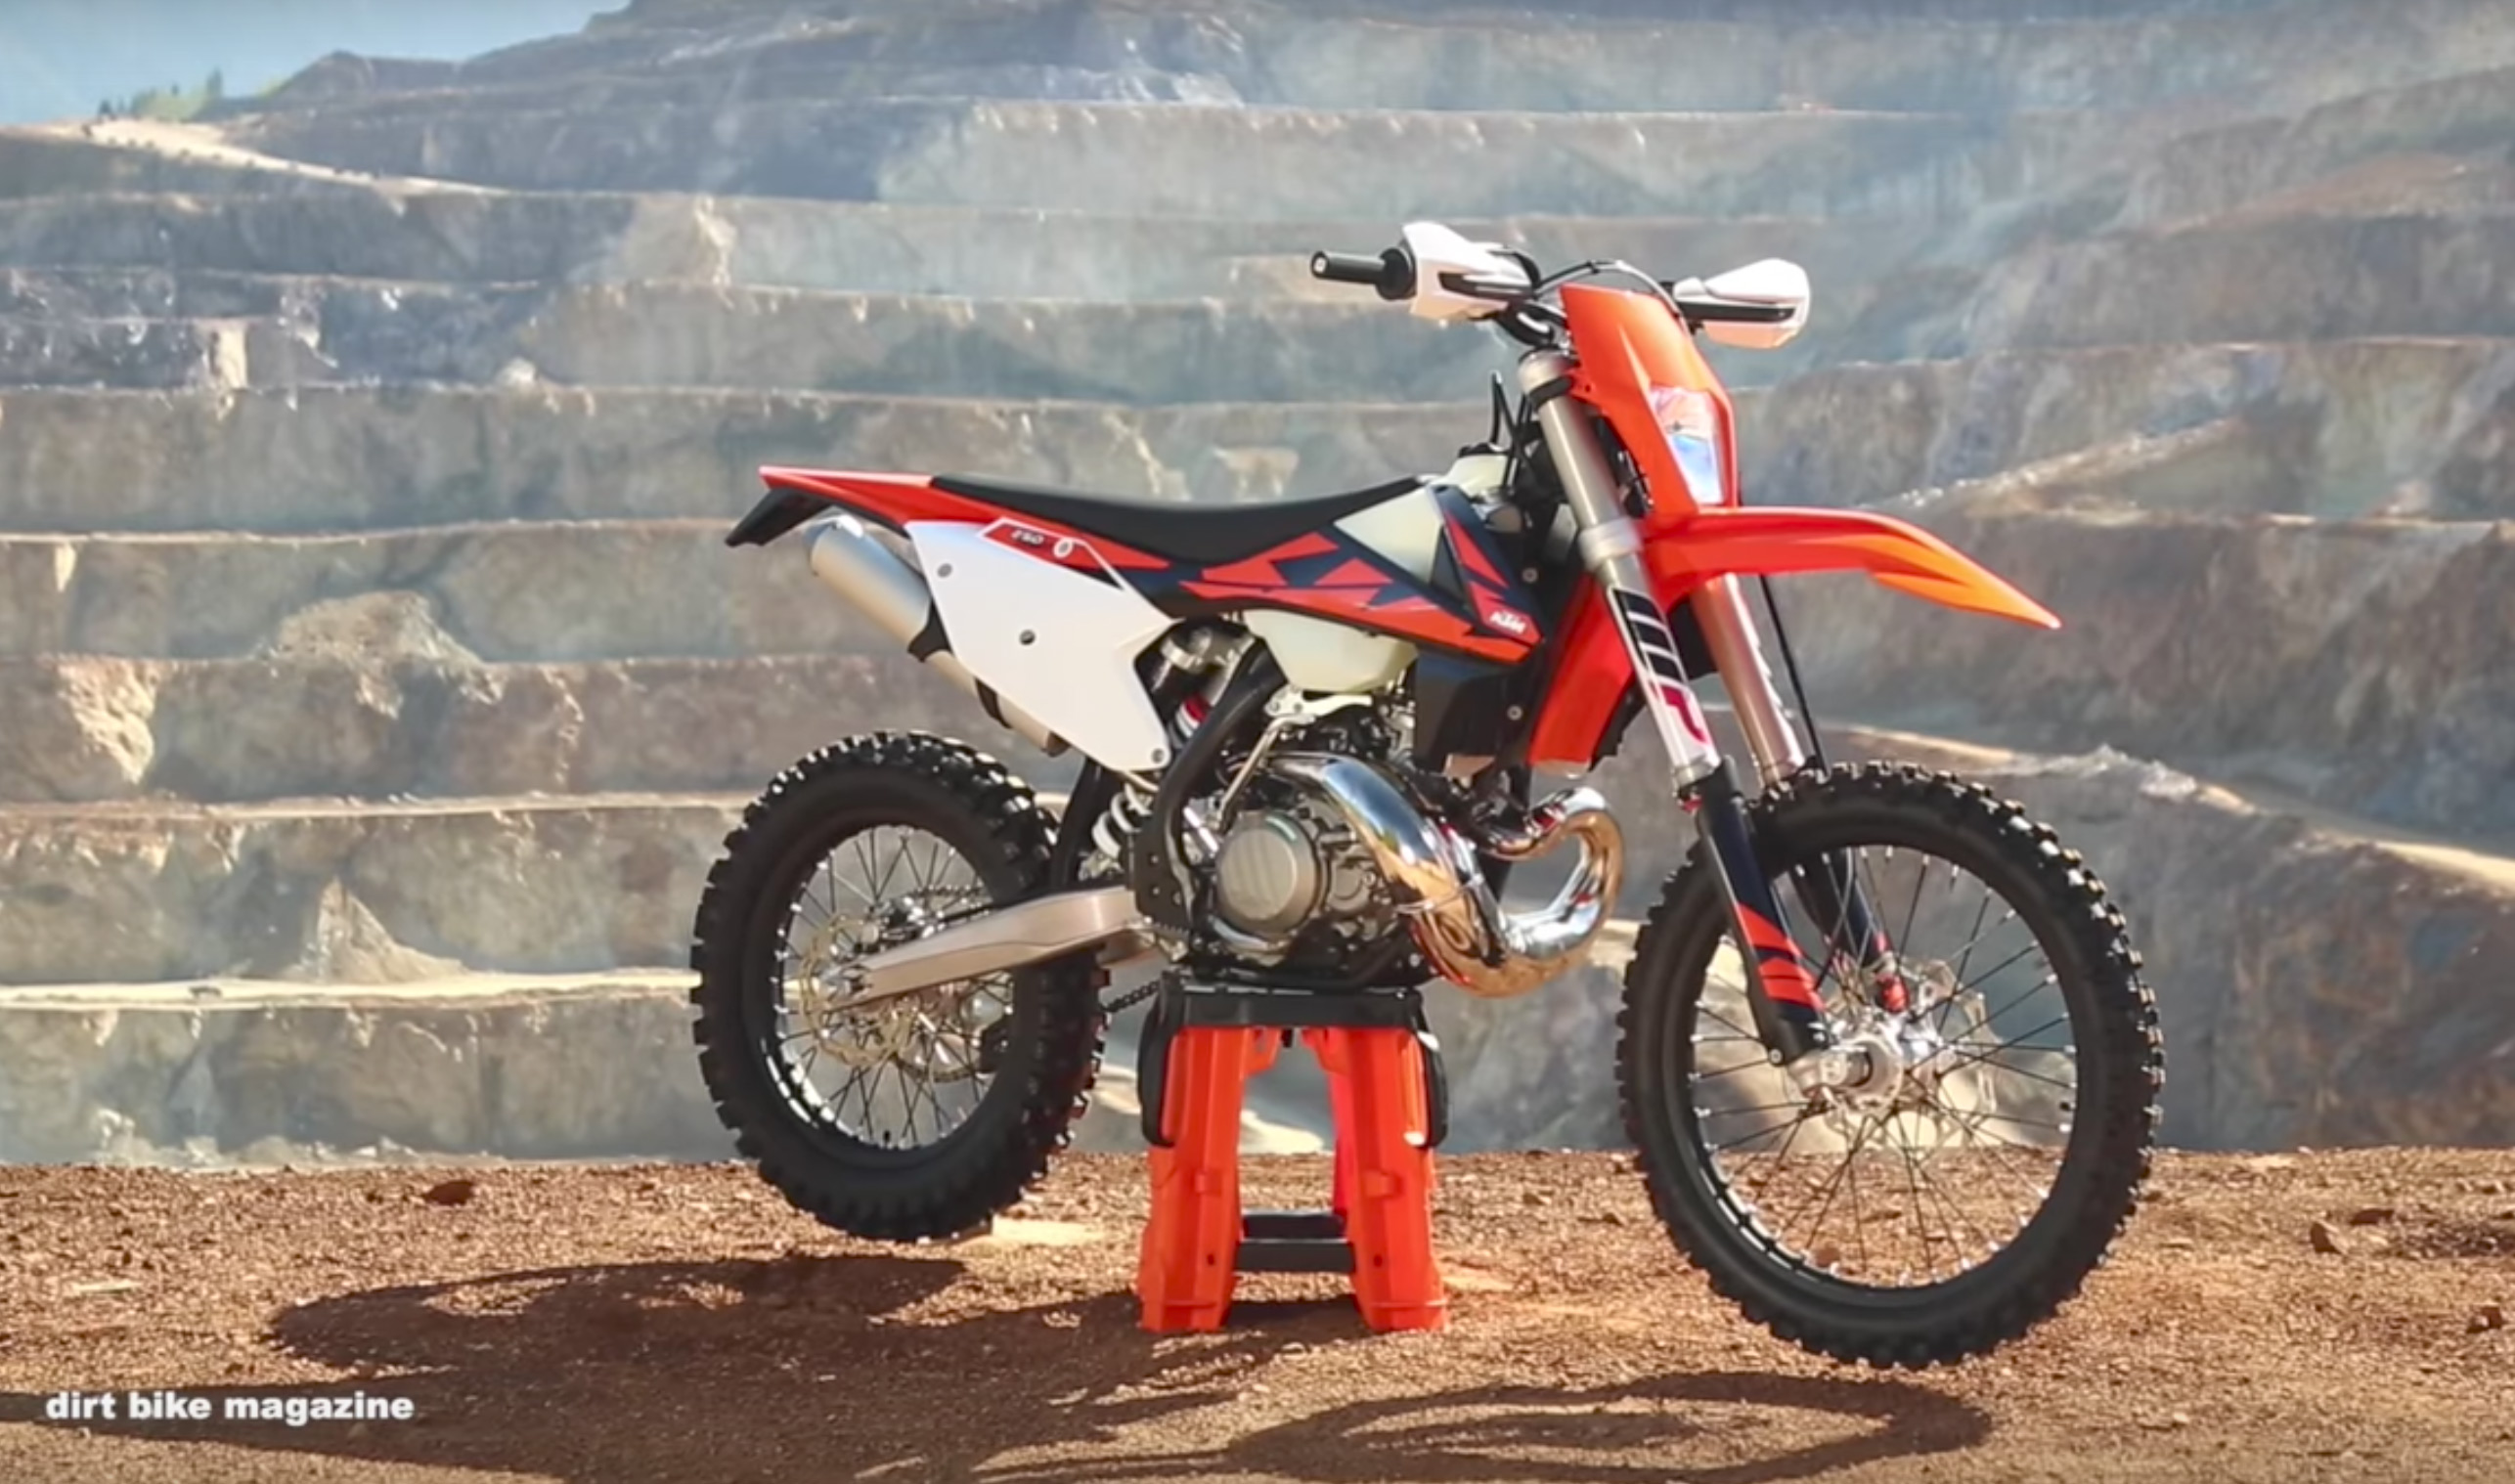 2018 ktm two stroke fuel injection.  injection first ride video on the new 2 stroke fuel injection ktm 250 xcw from dirt  bike magazine to 2018 ktm two stroke fuel injection